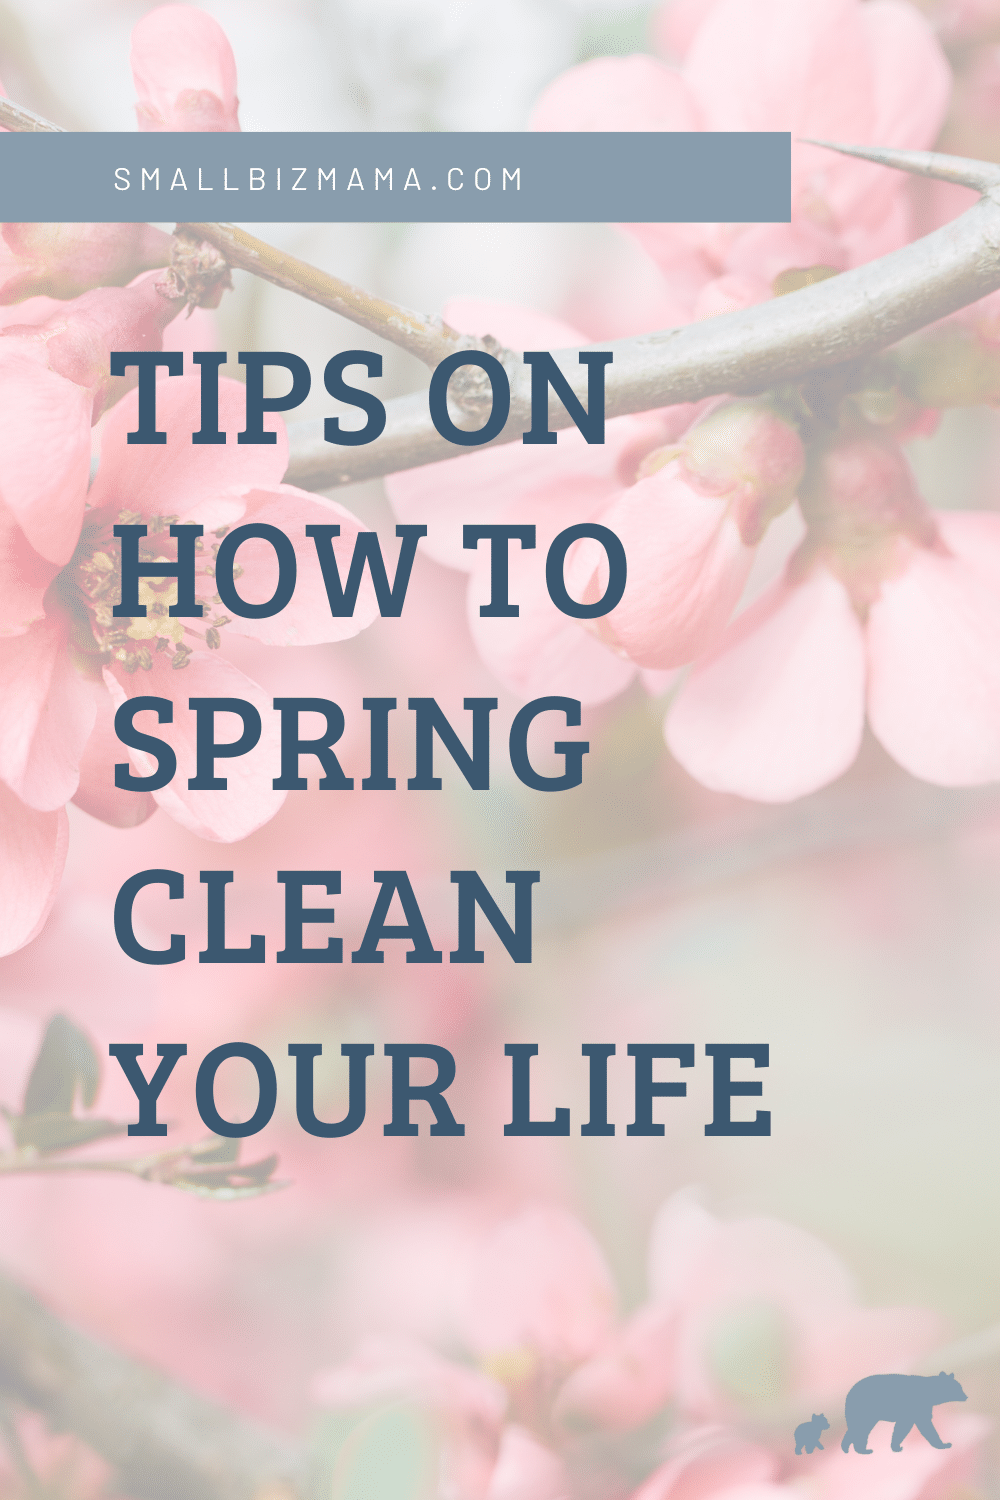 Tips on how to spring clean your life